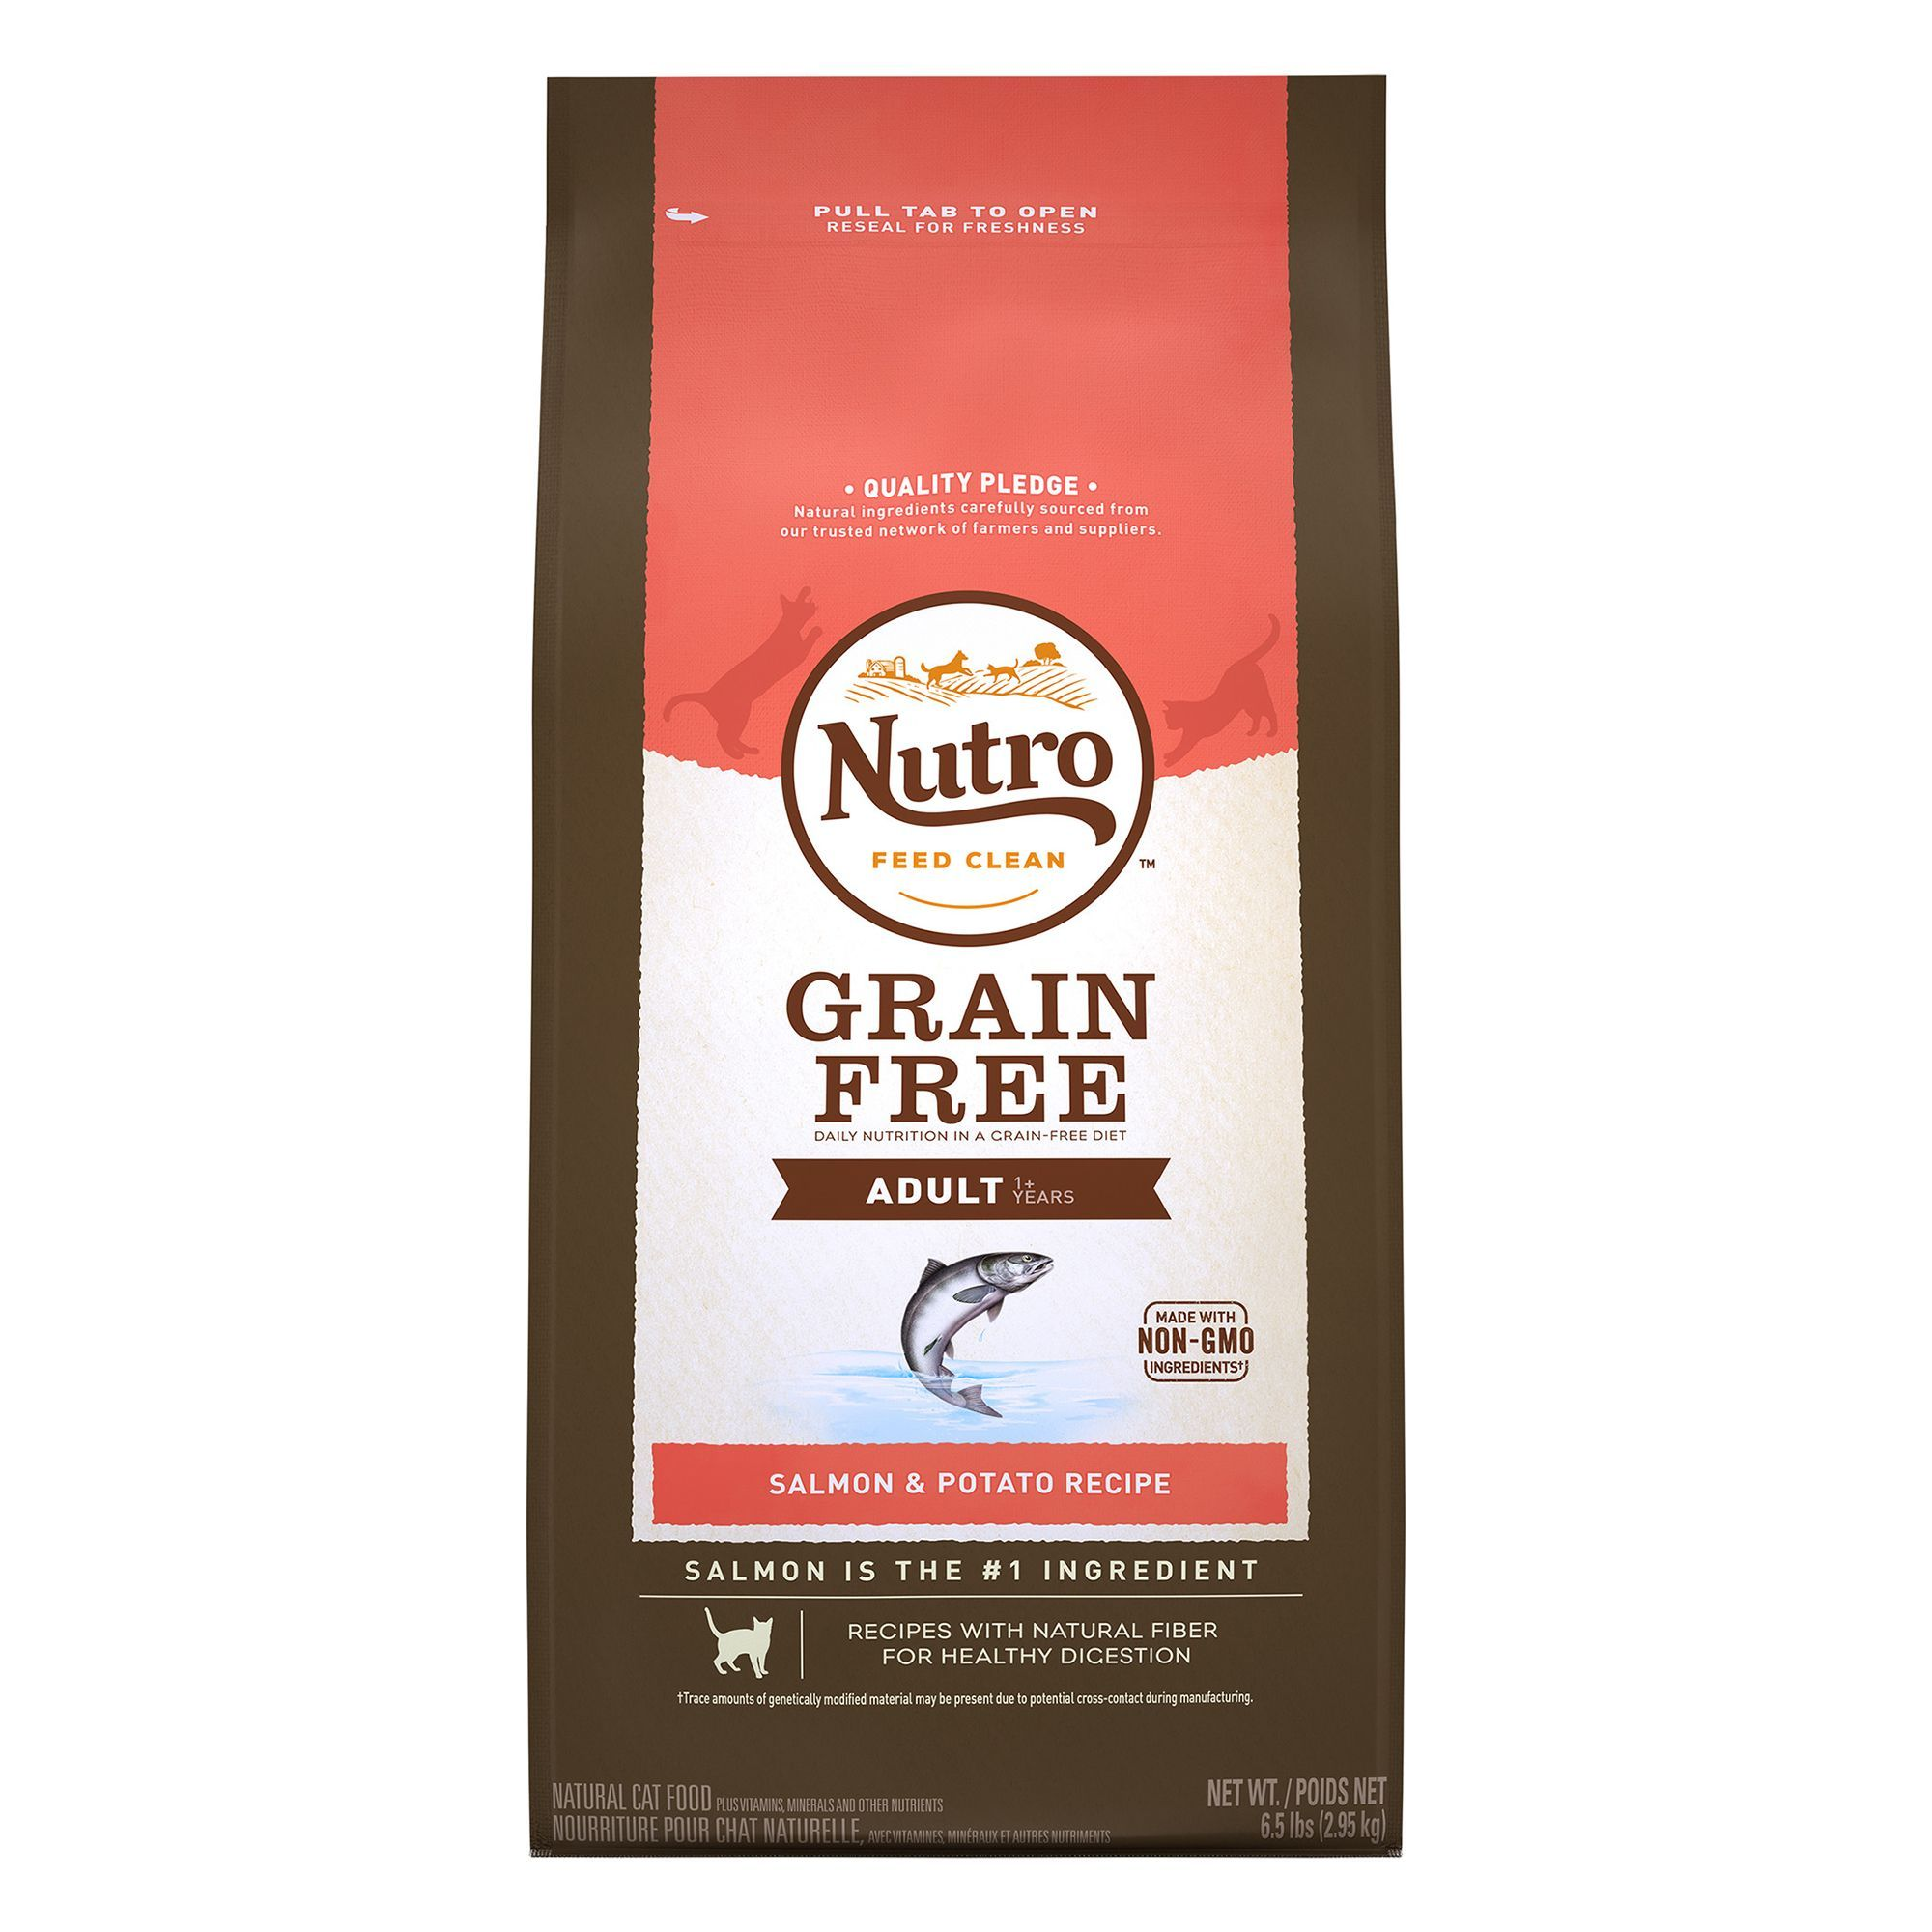 Nutro Natural Choice Grain Free Adult Cat Food Size 6 5 Lb